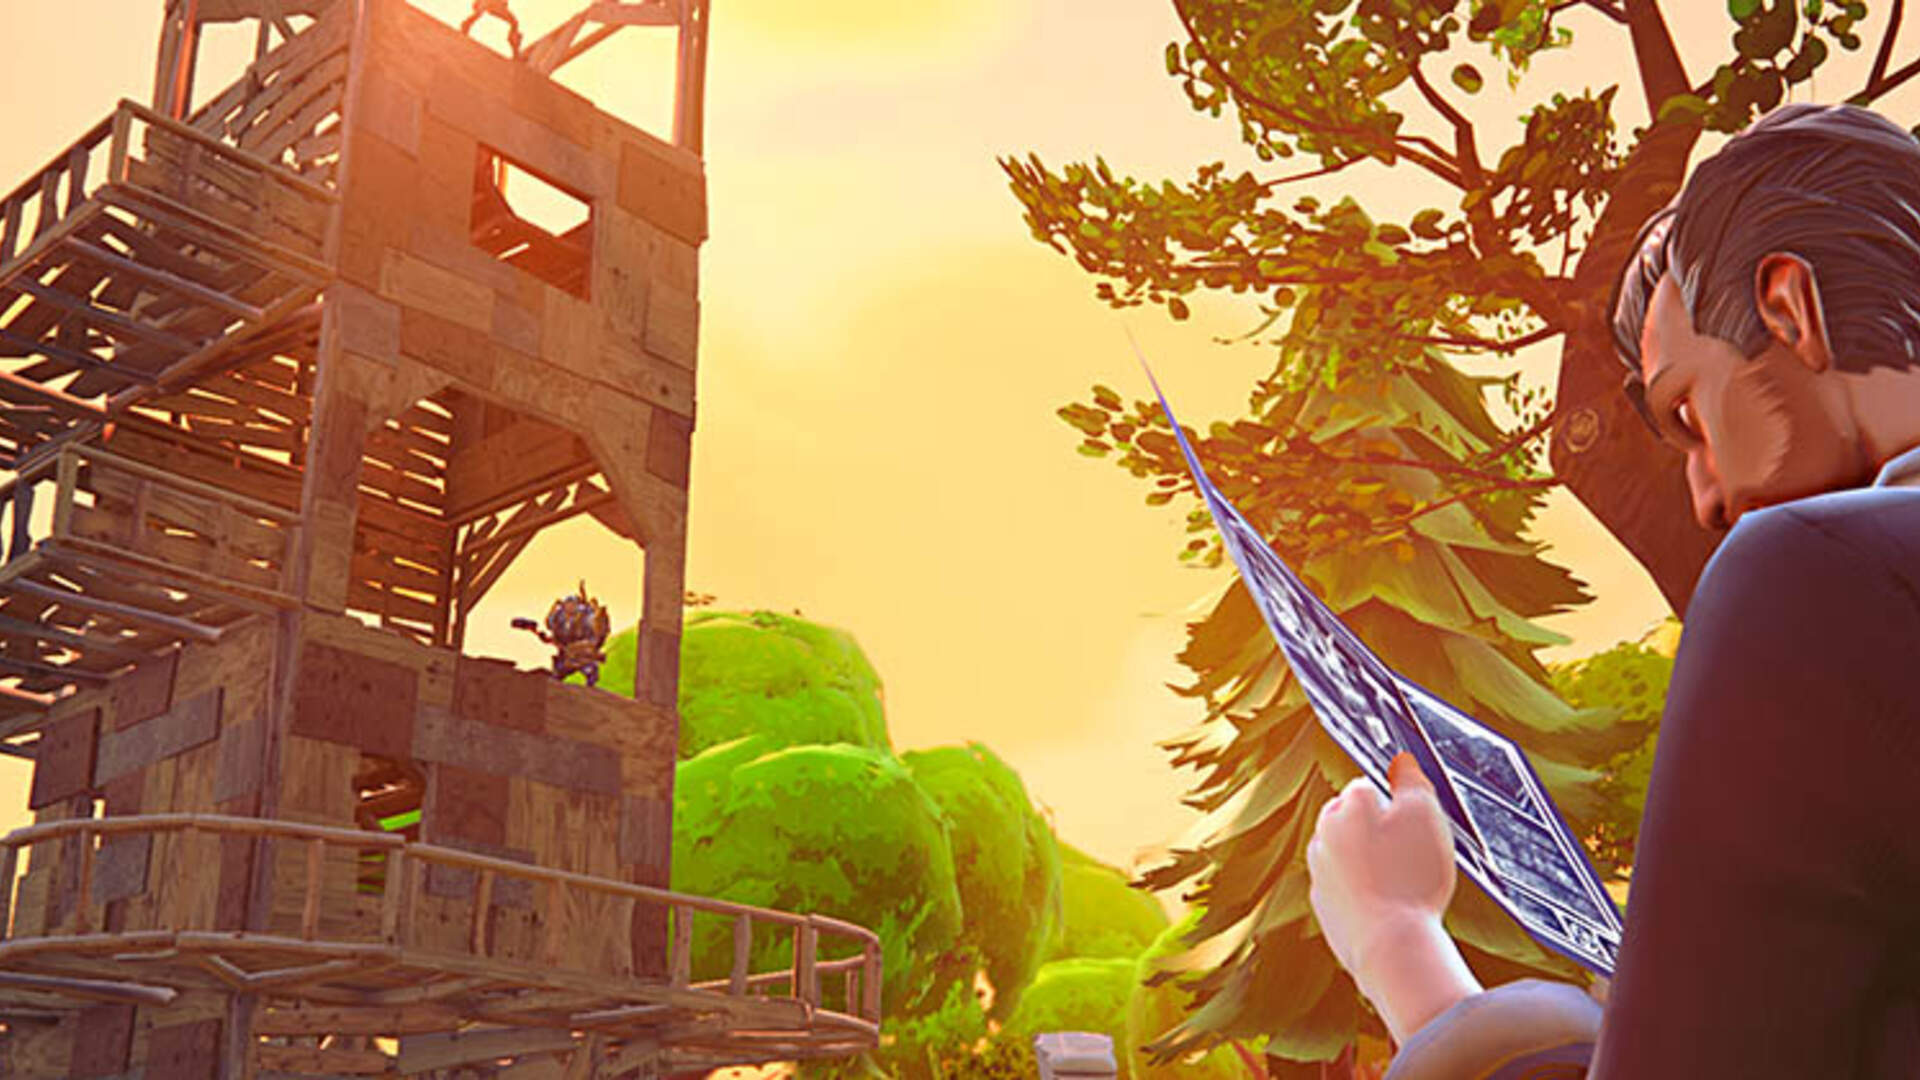 Fortnite Switch Players Can't Log In Using Accounts Linked With the PlayStation 4 Version of the Game